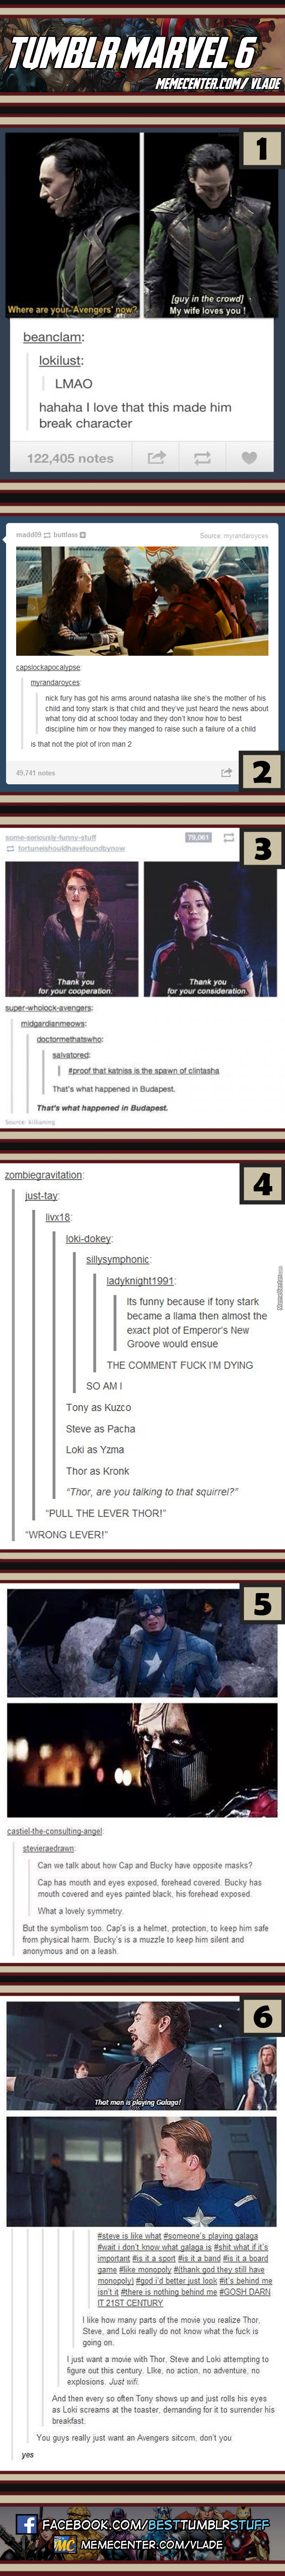 Tumblr Marvel #6